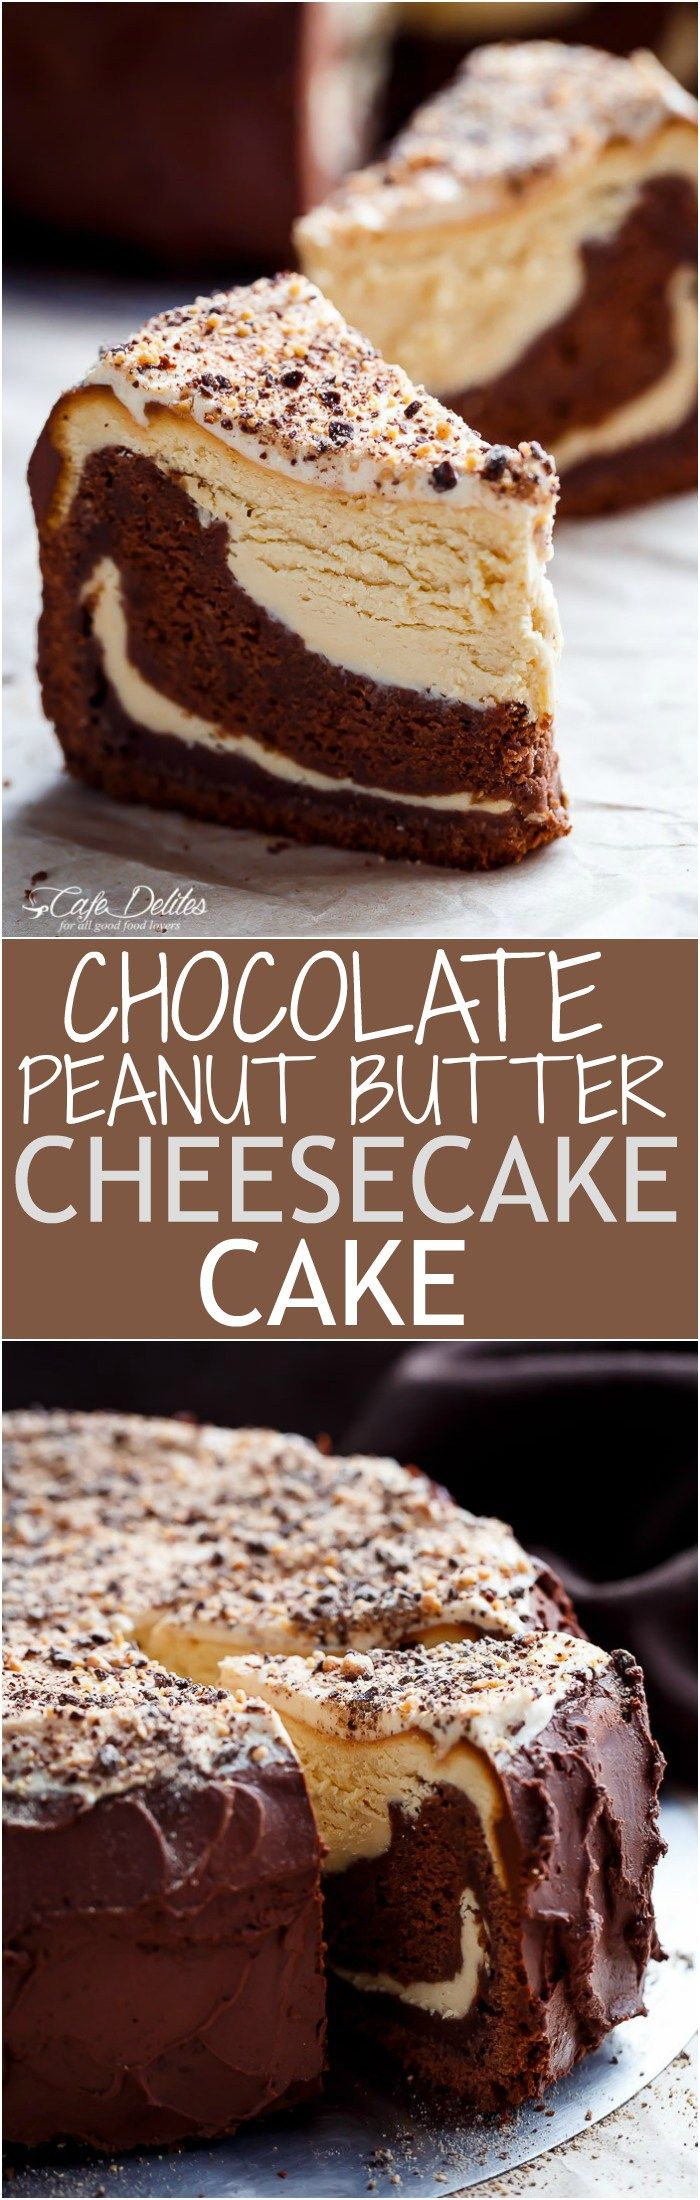 Chocolate Peanut Butter Cheesecake Cake made in the ONE pan! Creamy peanut…